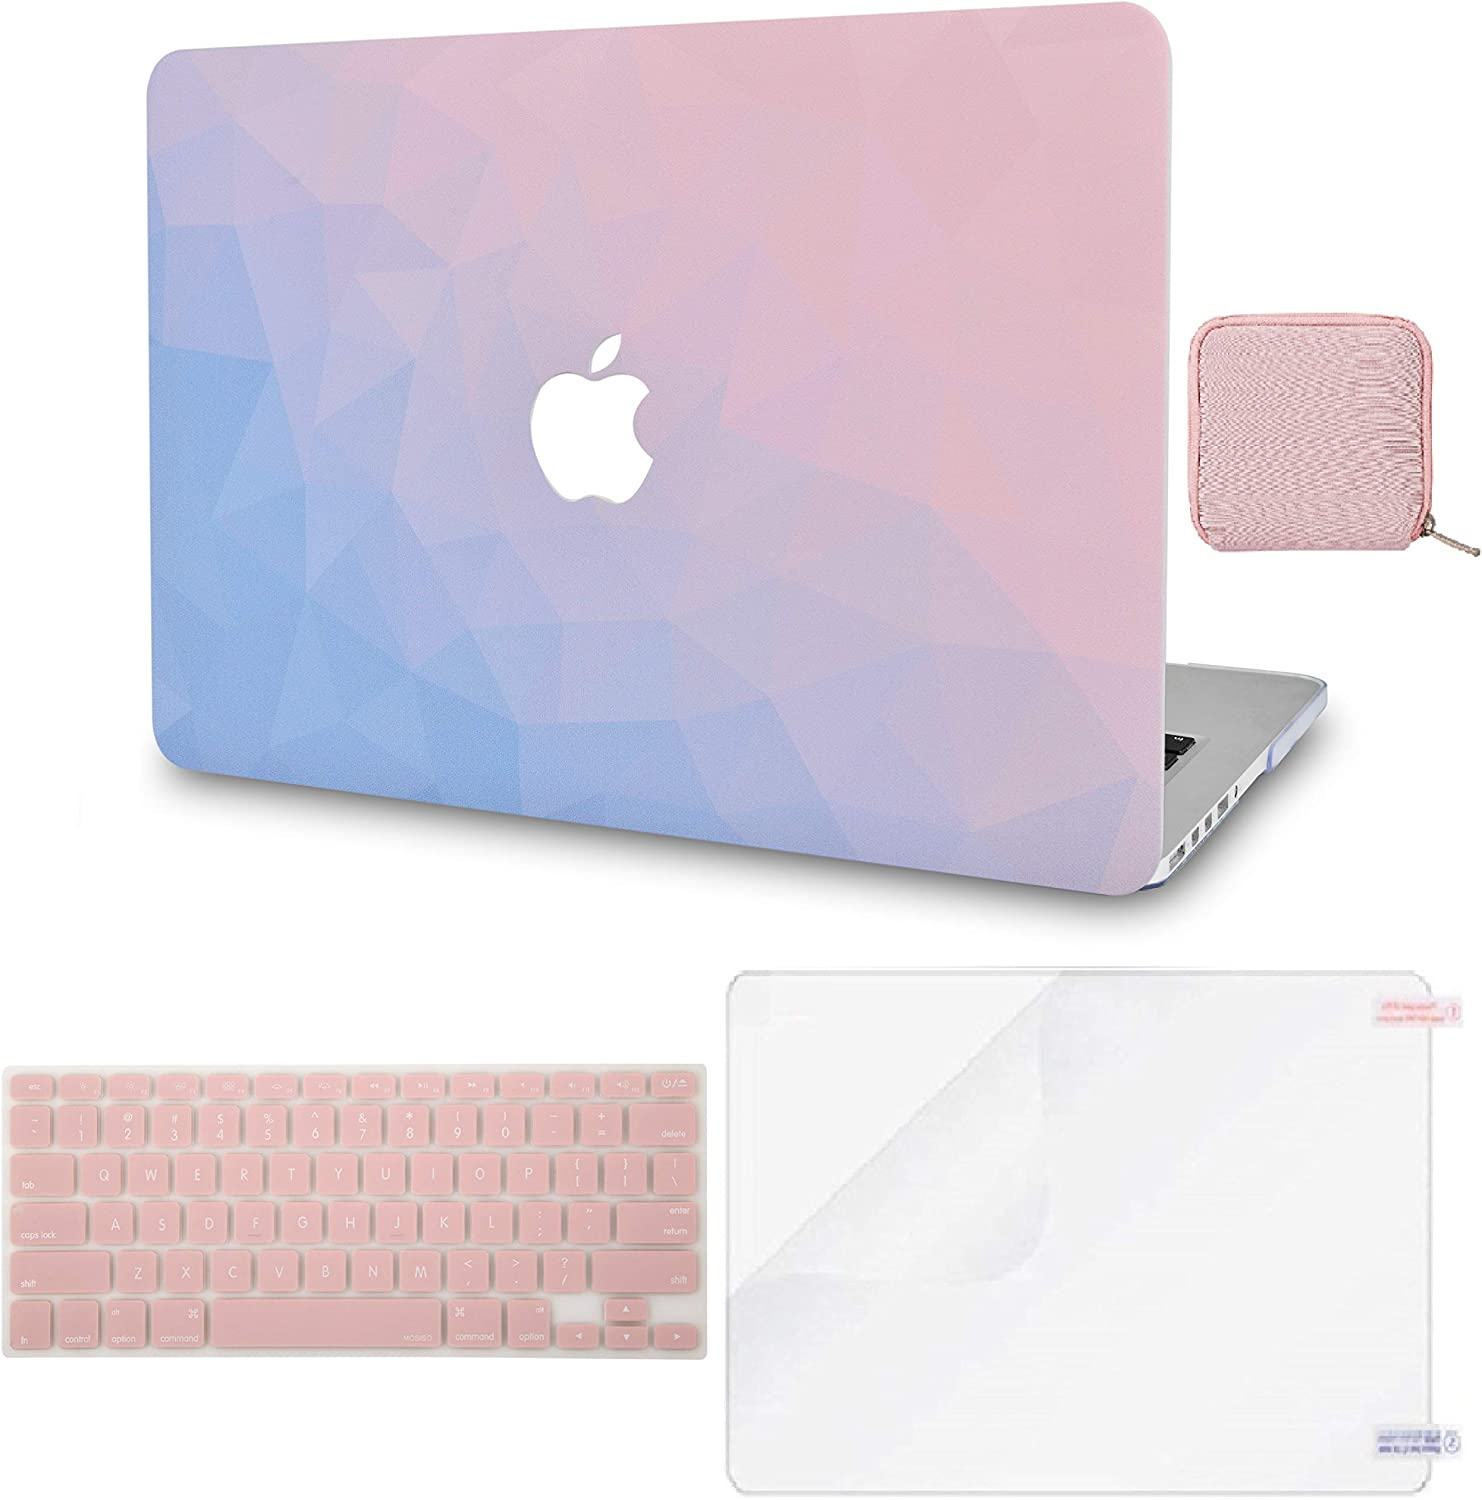 LuvCase 4 in 1 Laptop Case for MacBook Air 13 Inch (Touch ID)(2020) A2179 Retina Display Hard Shell Cover, Pouch, Keyboard Cover & Screen Protector (Ombre Pink Blue)